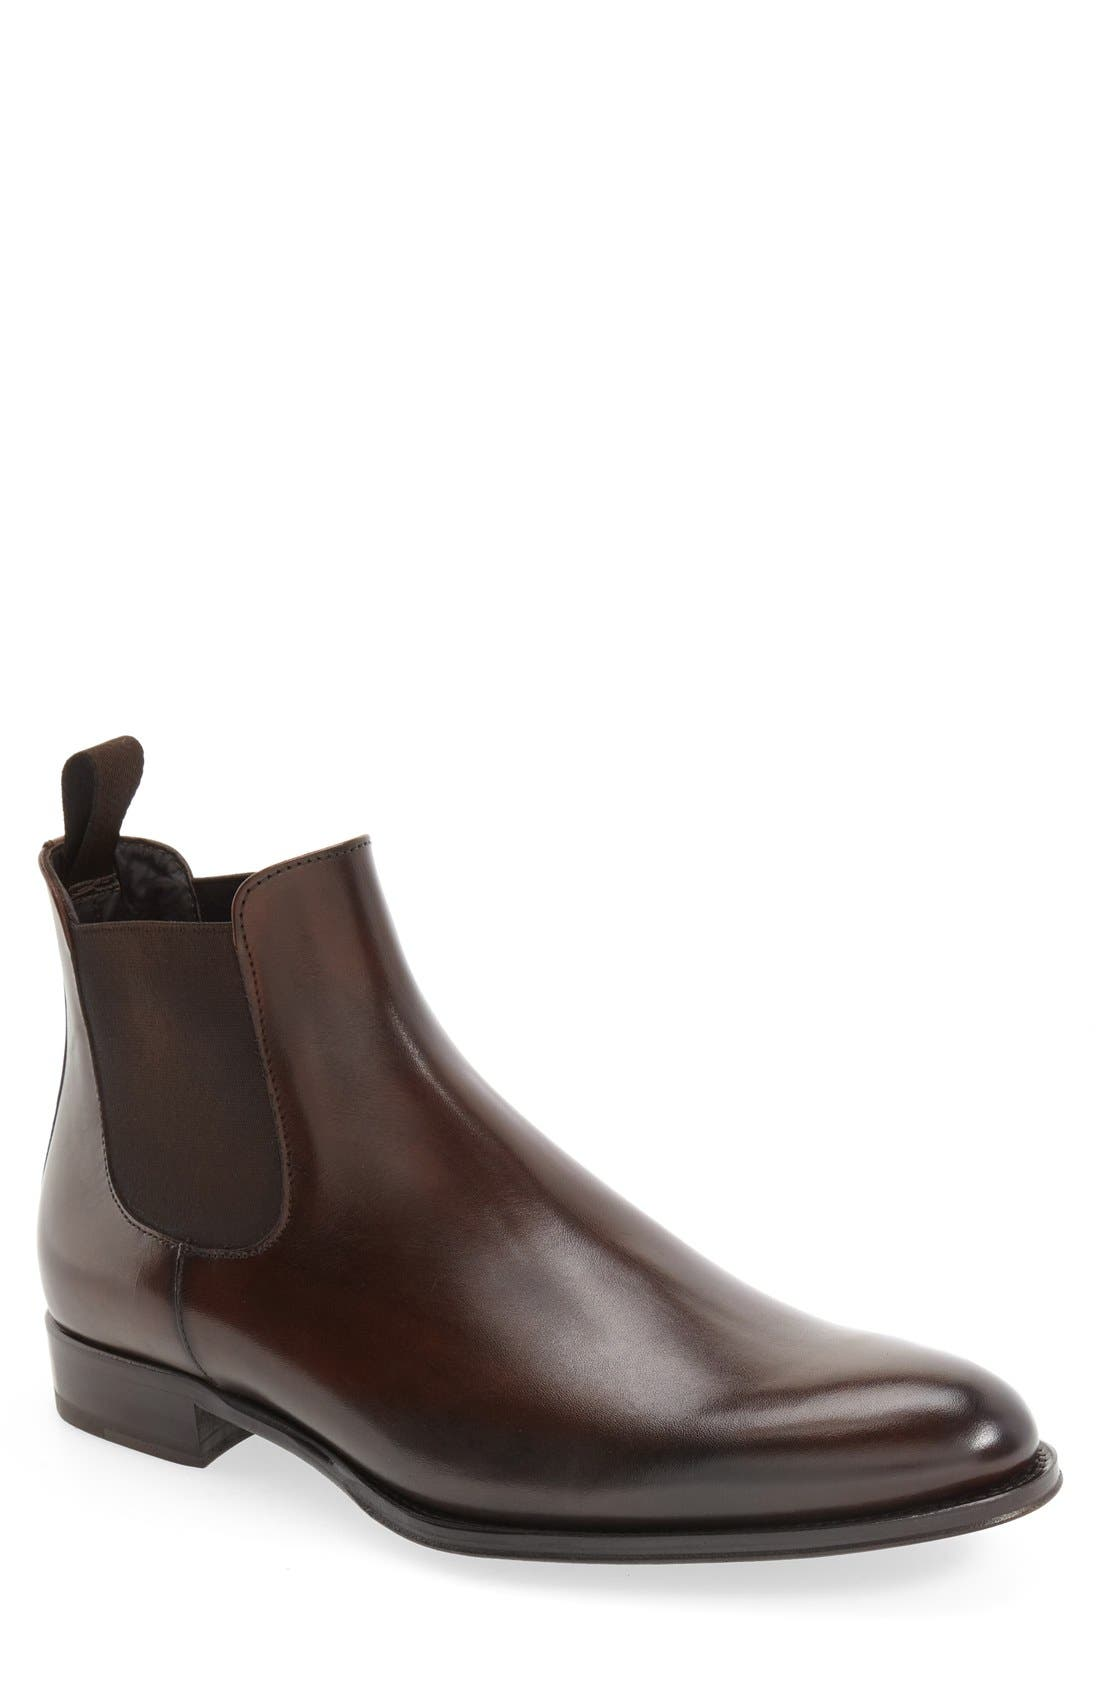 Toby Chelsea Boot,                             Main thumbnail 1, color,                             PRAGA TMORO